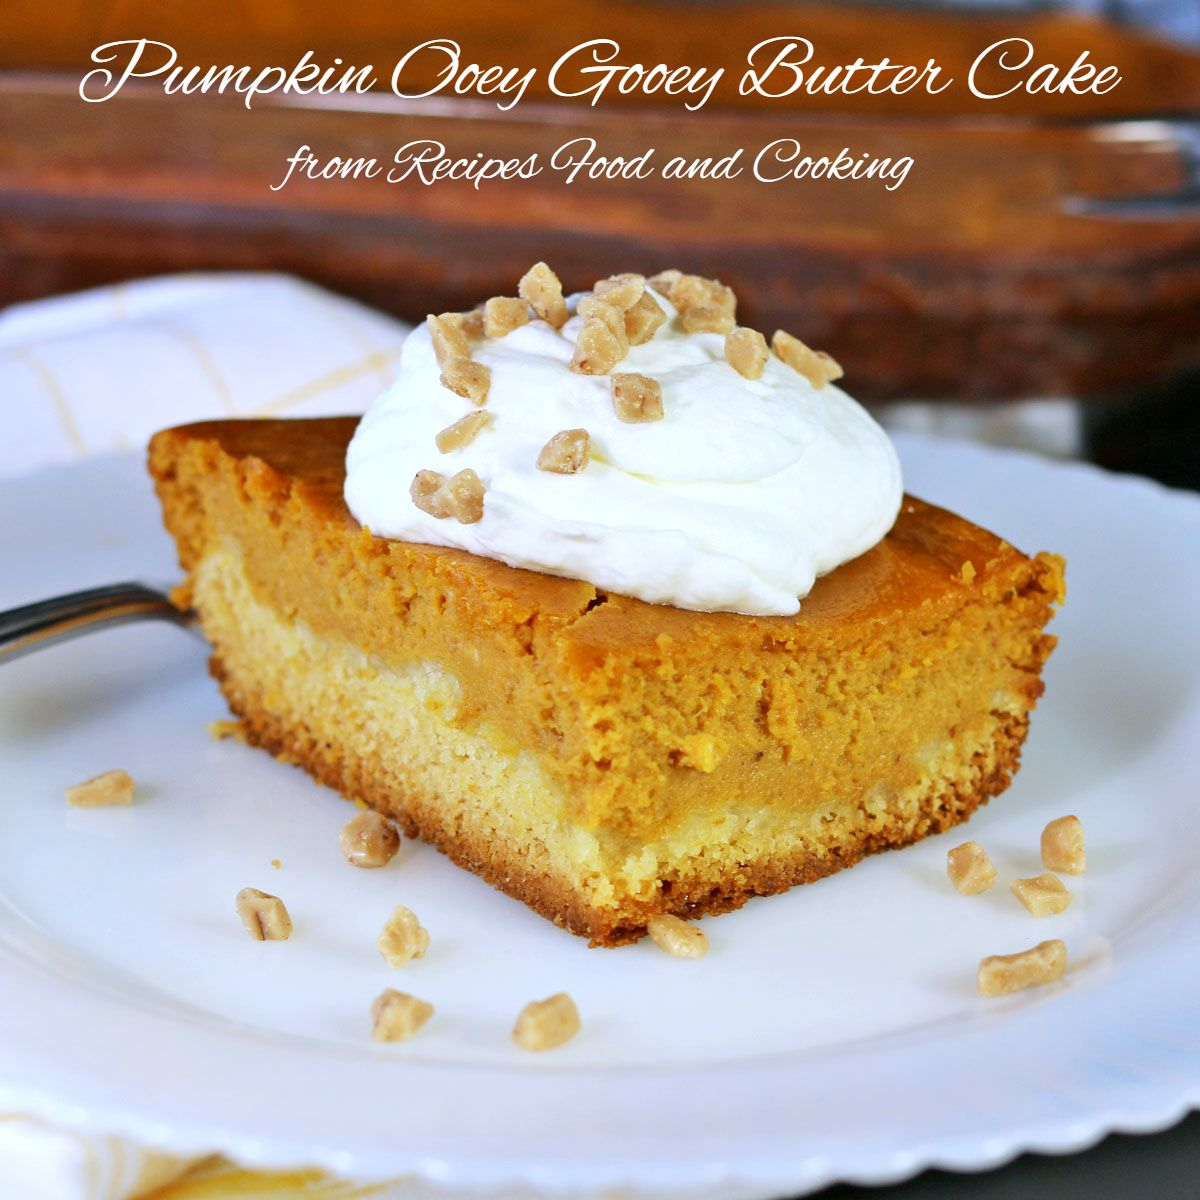 Ooie Gooie Butter Cake Recipes